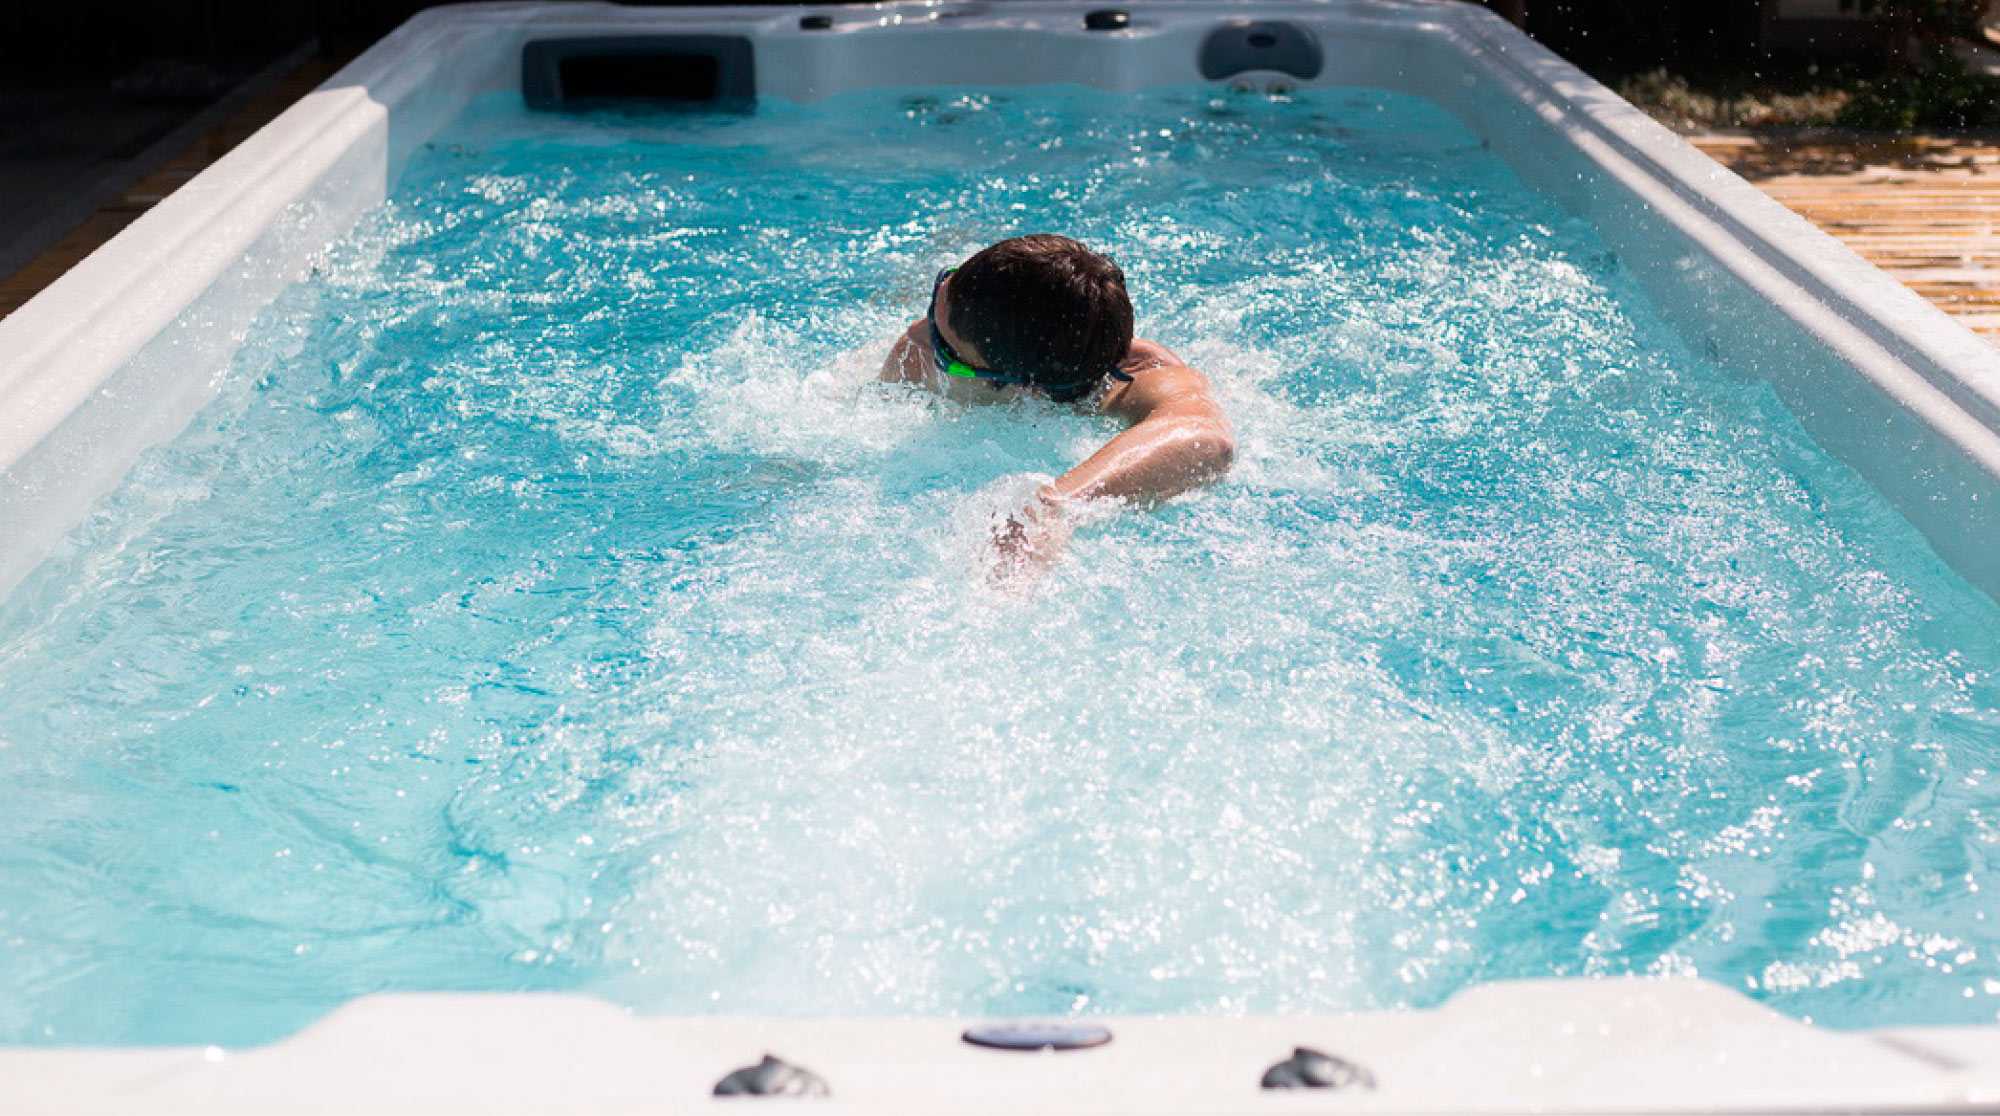 EP swim spas are perfect for working out.